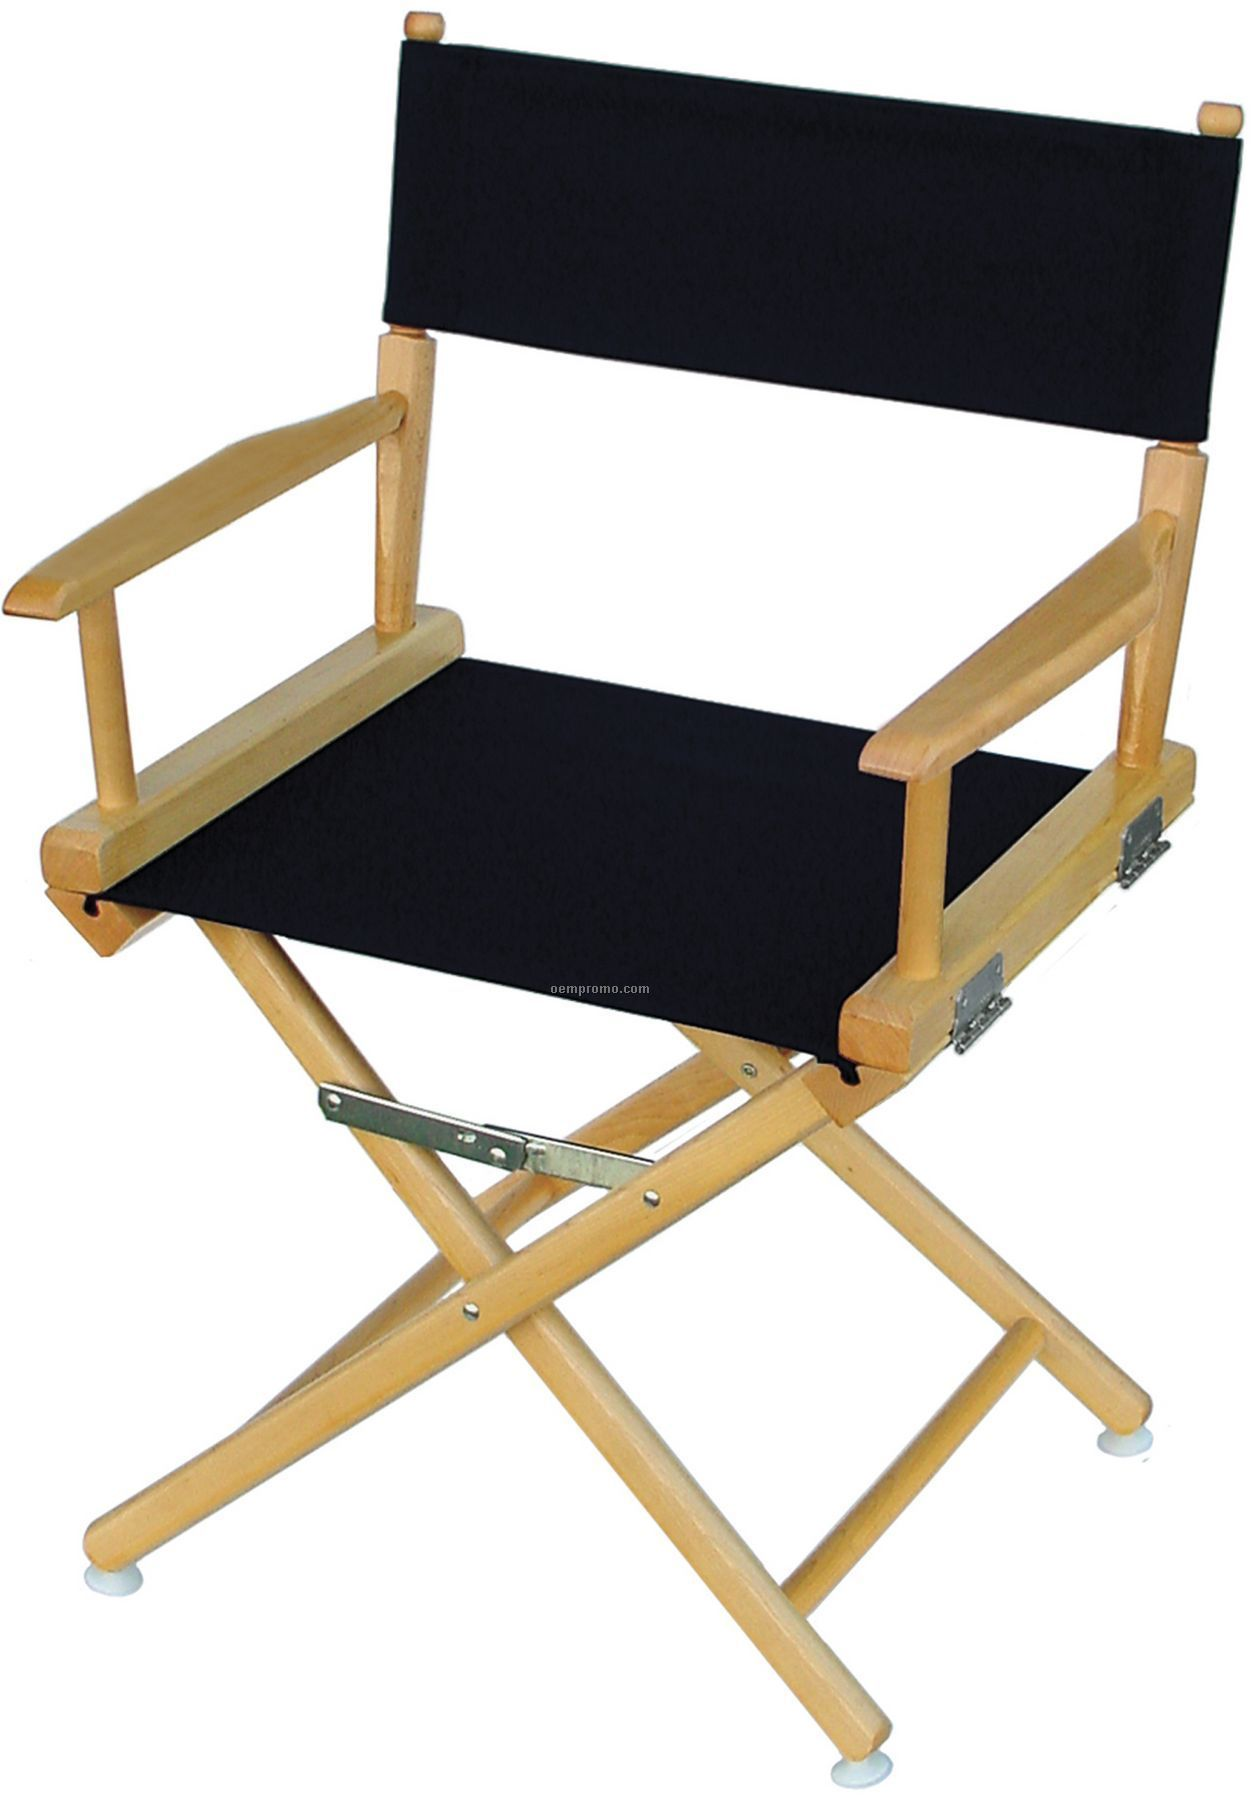 Amazon.com : Guide Gear Oversized Tall Directors Chair ...